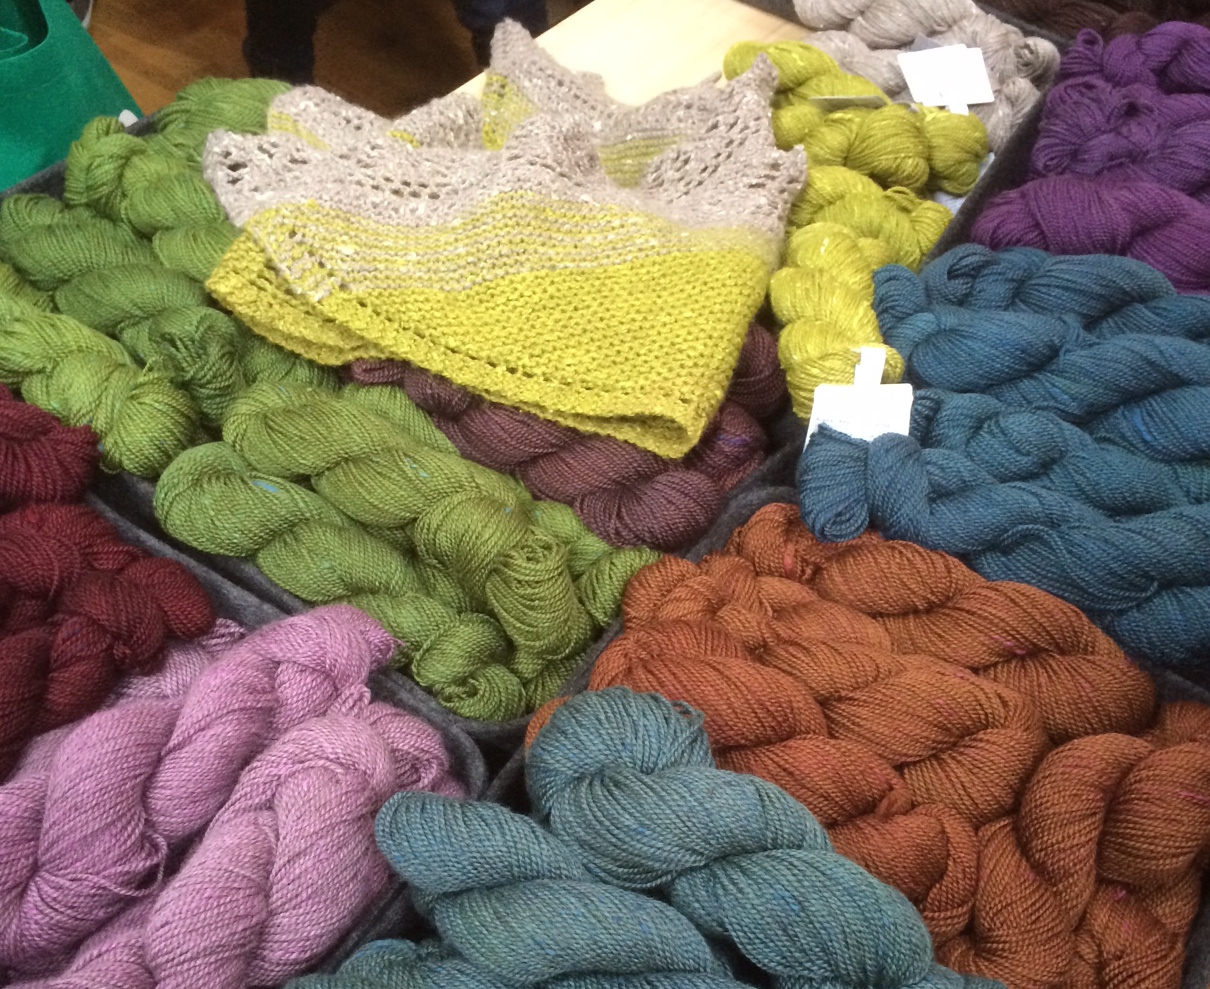 Some of the gorgeous yarns on offer at Unravel. These beauties were on The Fibre Co. stand.